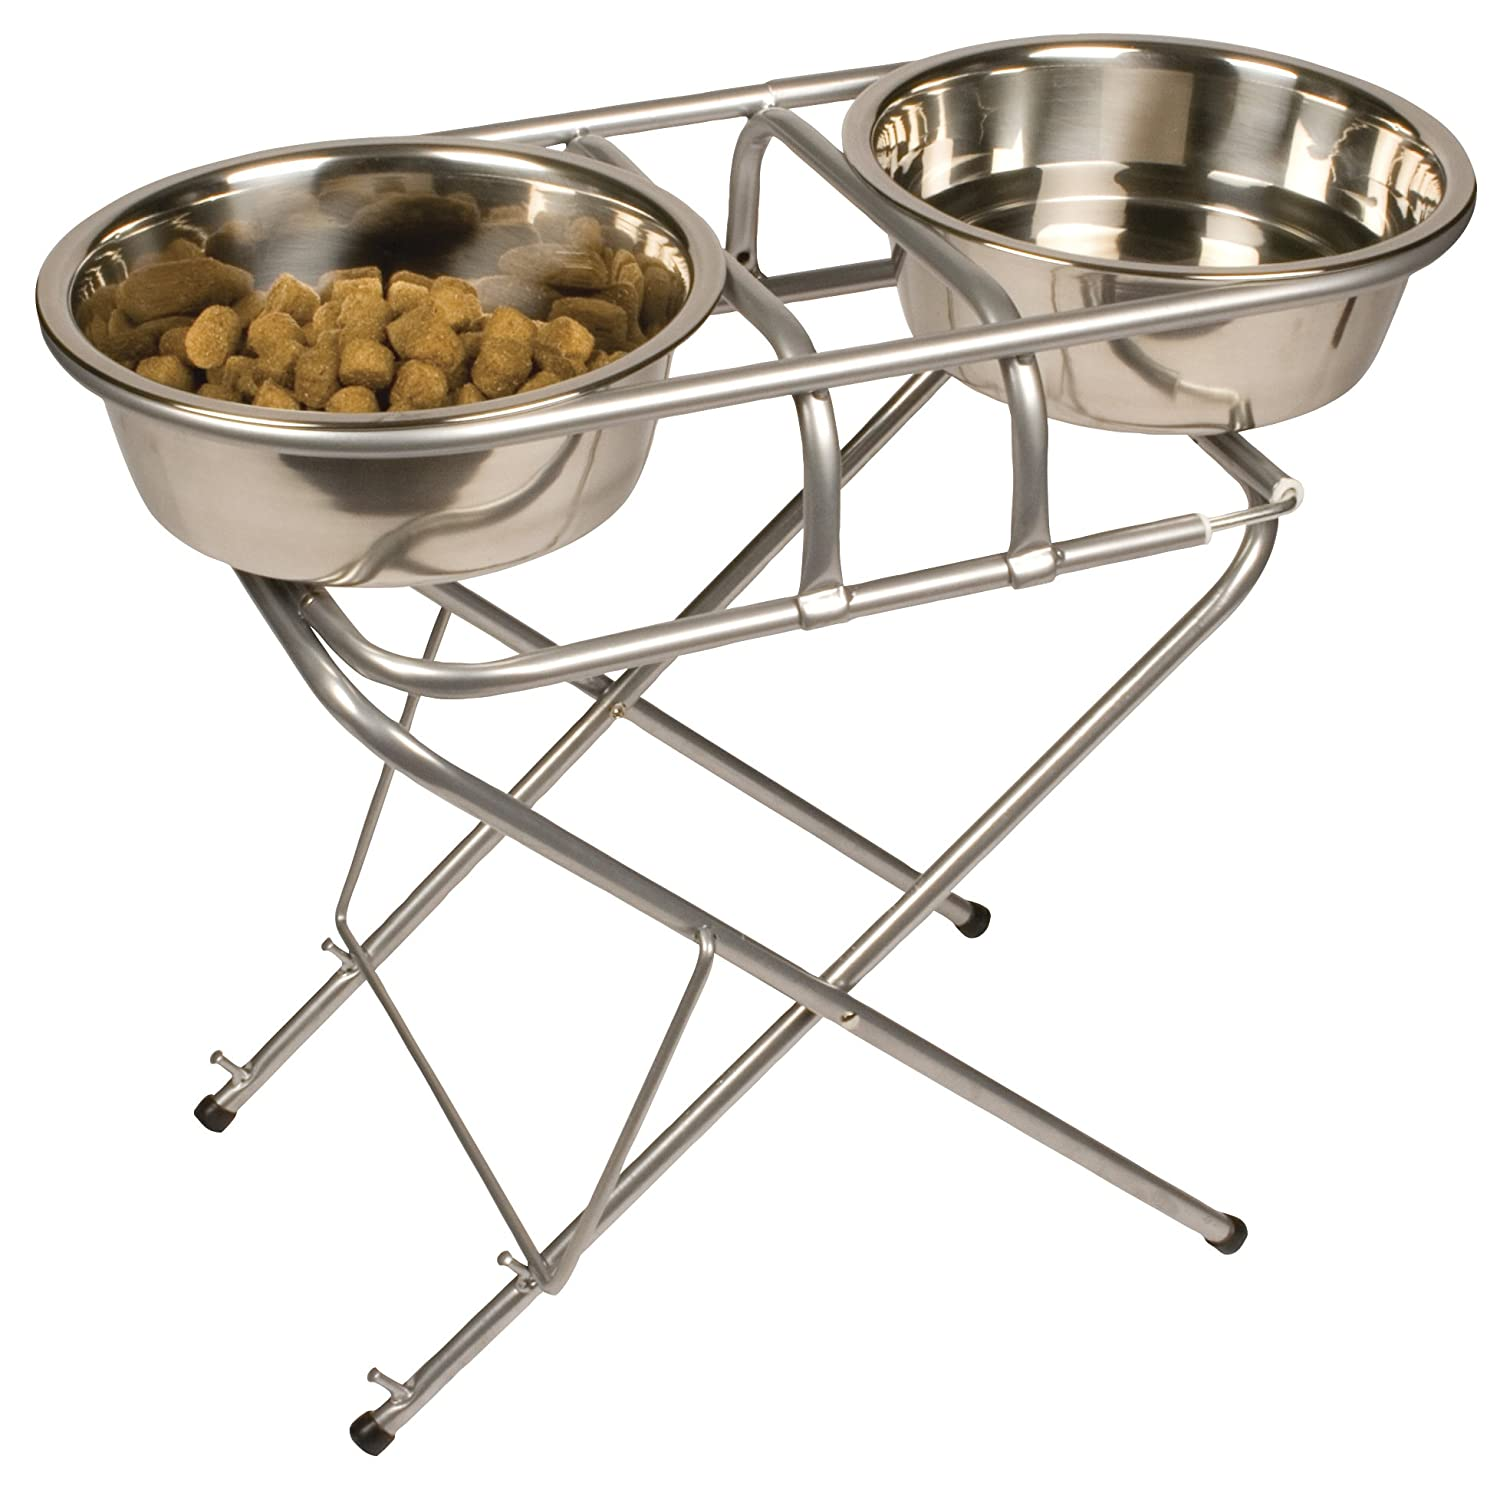 Jack and Dixie Stainless Steel Adjustable Elevated Dog Bowl and Stand Set